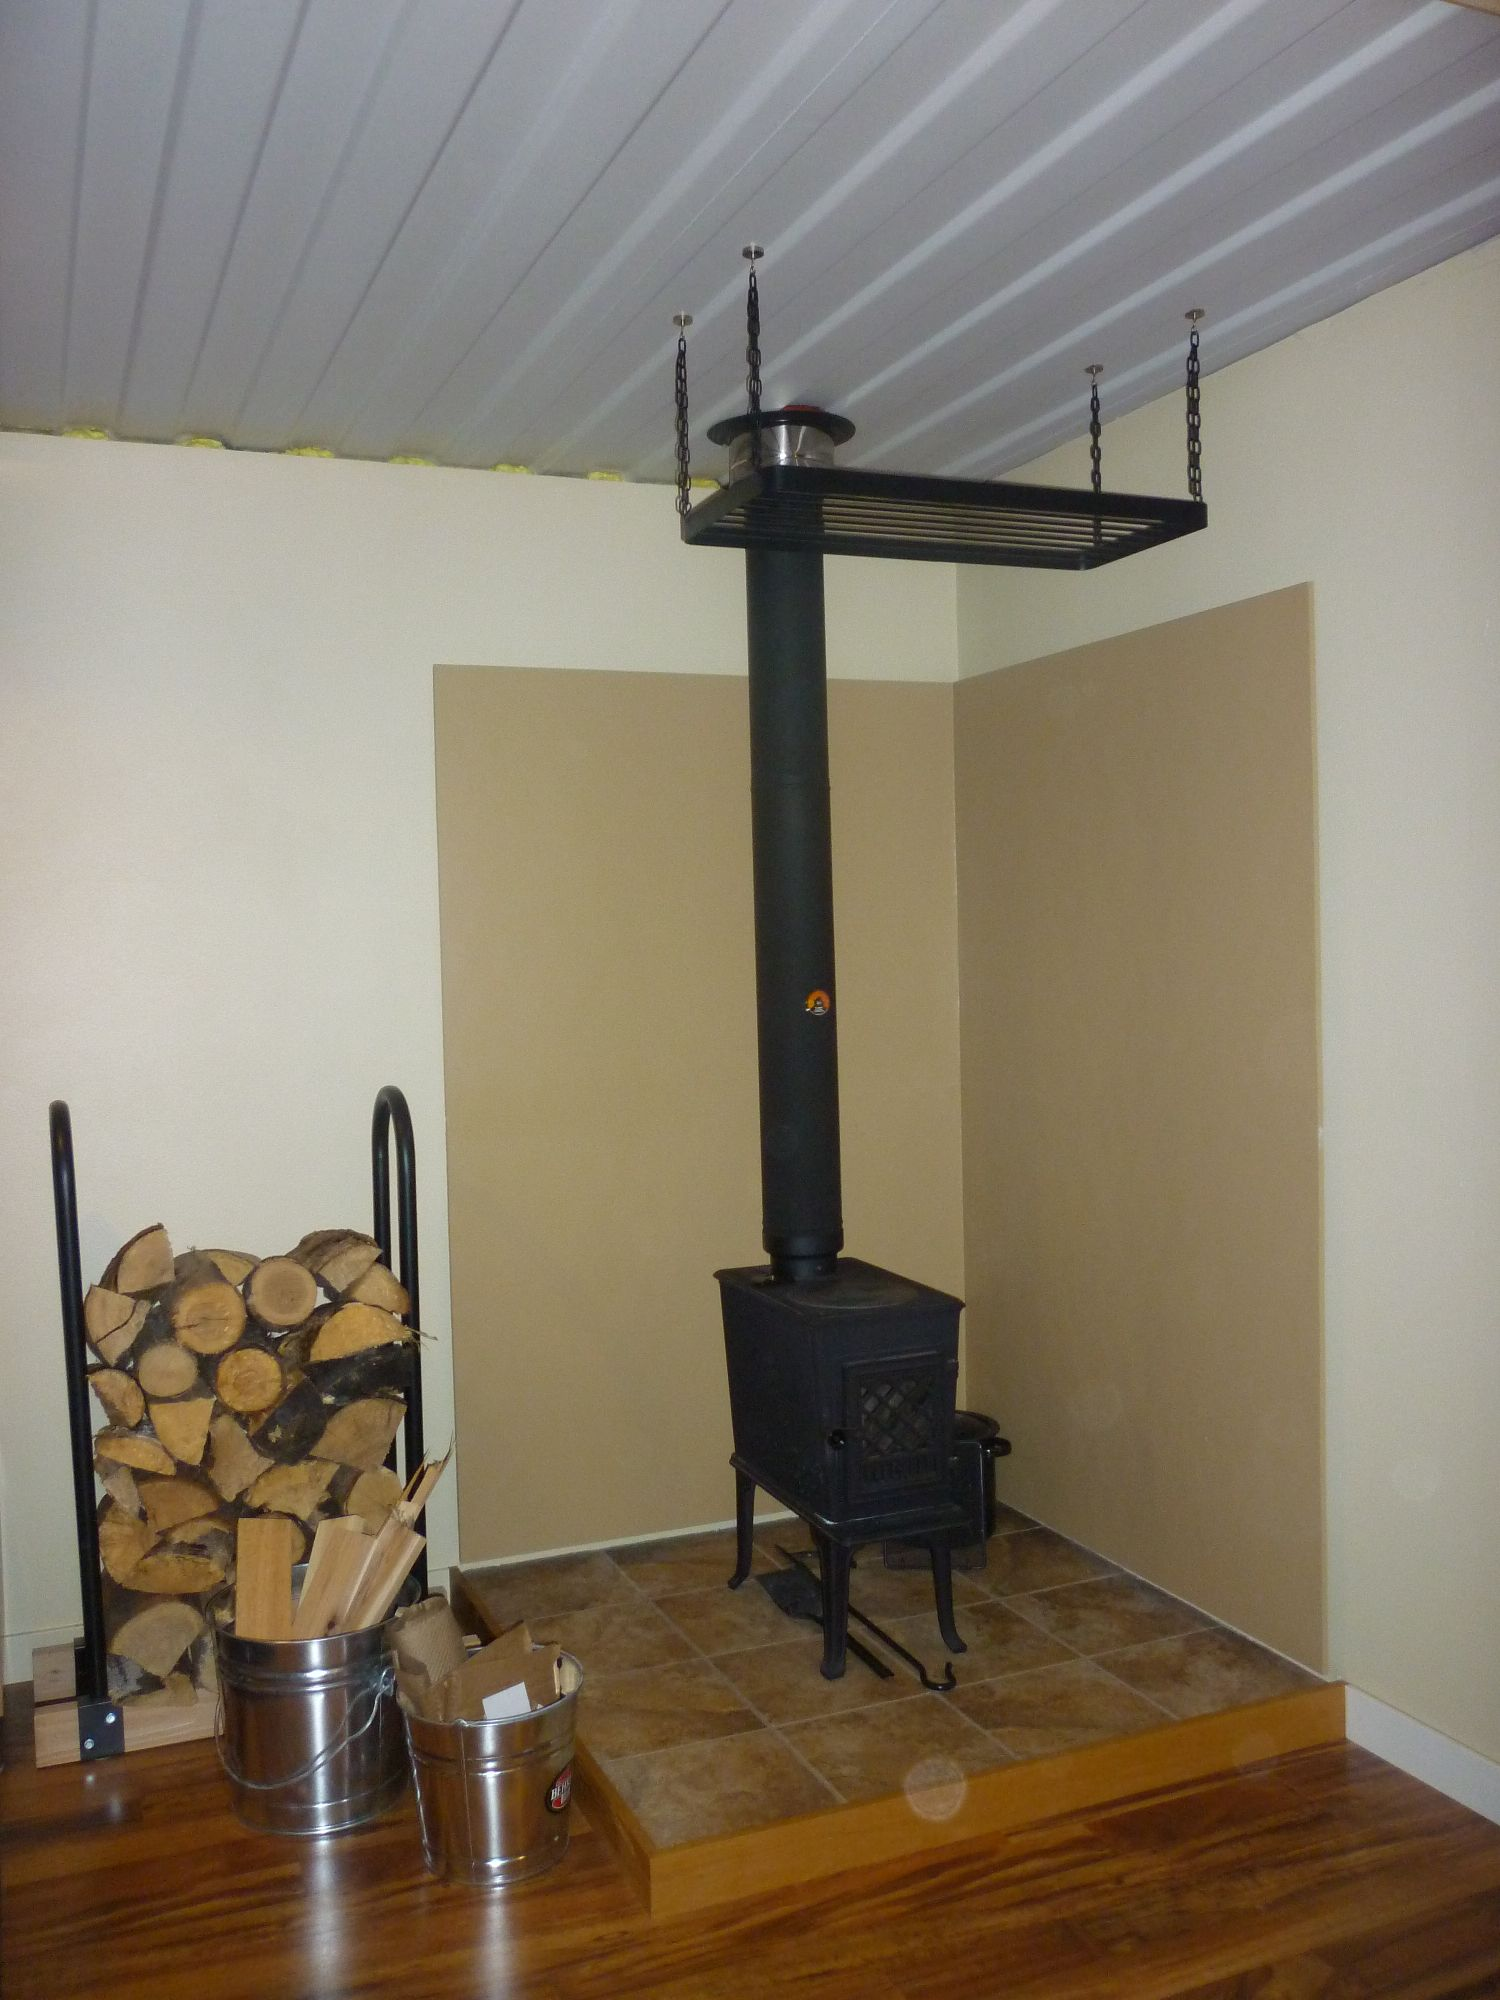 Garage Heater Craigslist Wood Stove Redux Tin Can Cabin